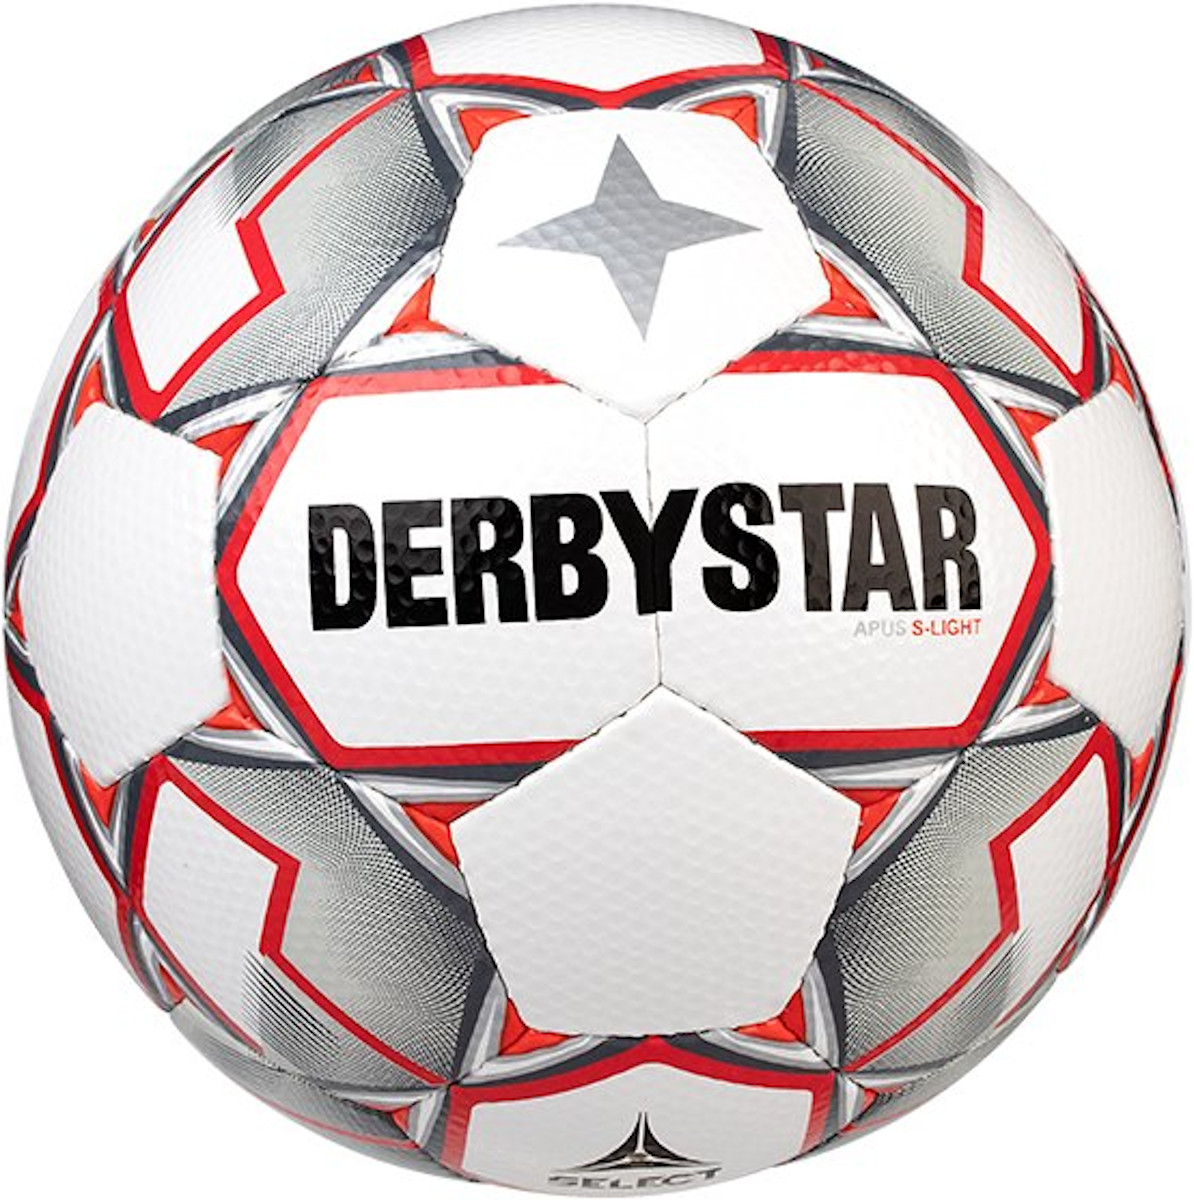 Balón Derbystar Apus S-Light v20 290 grams Lightball